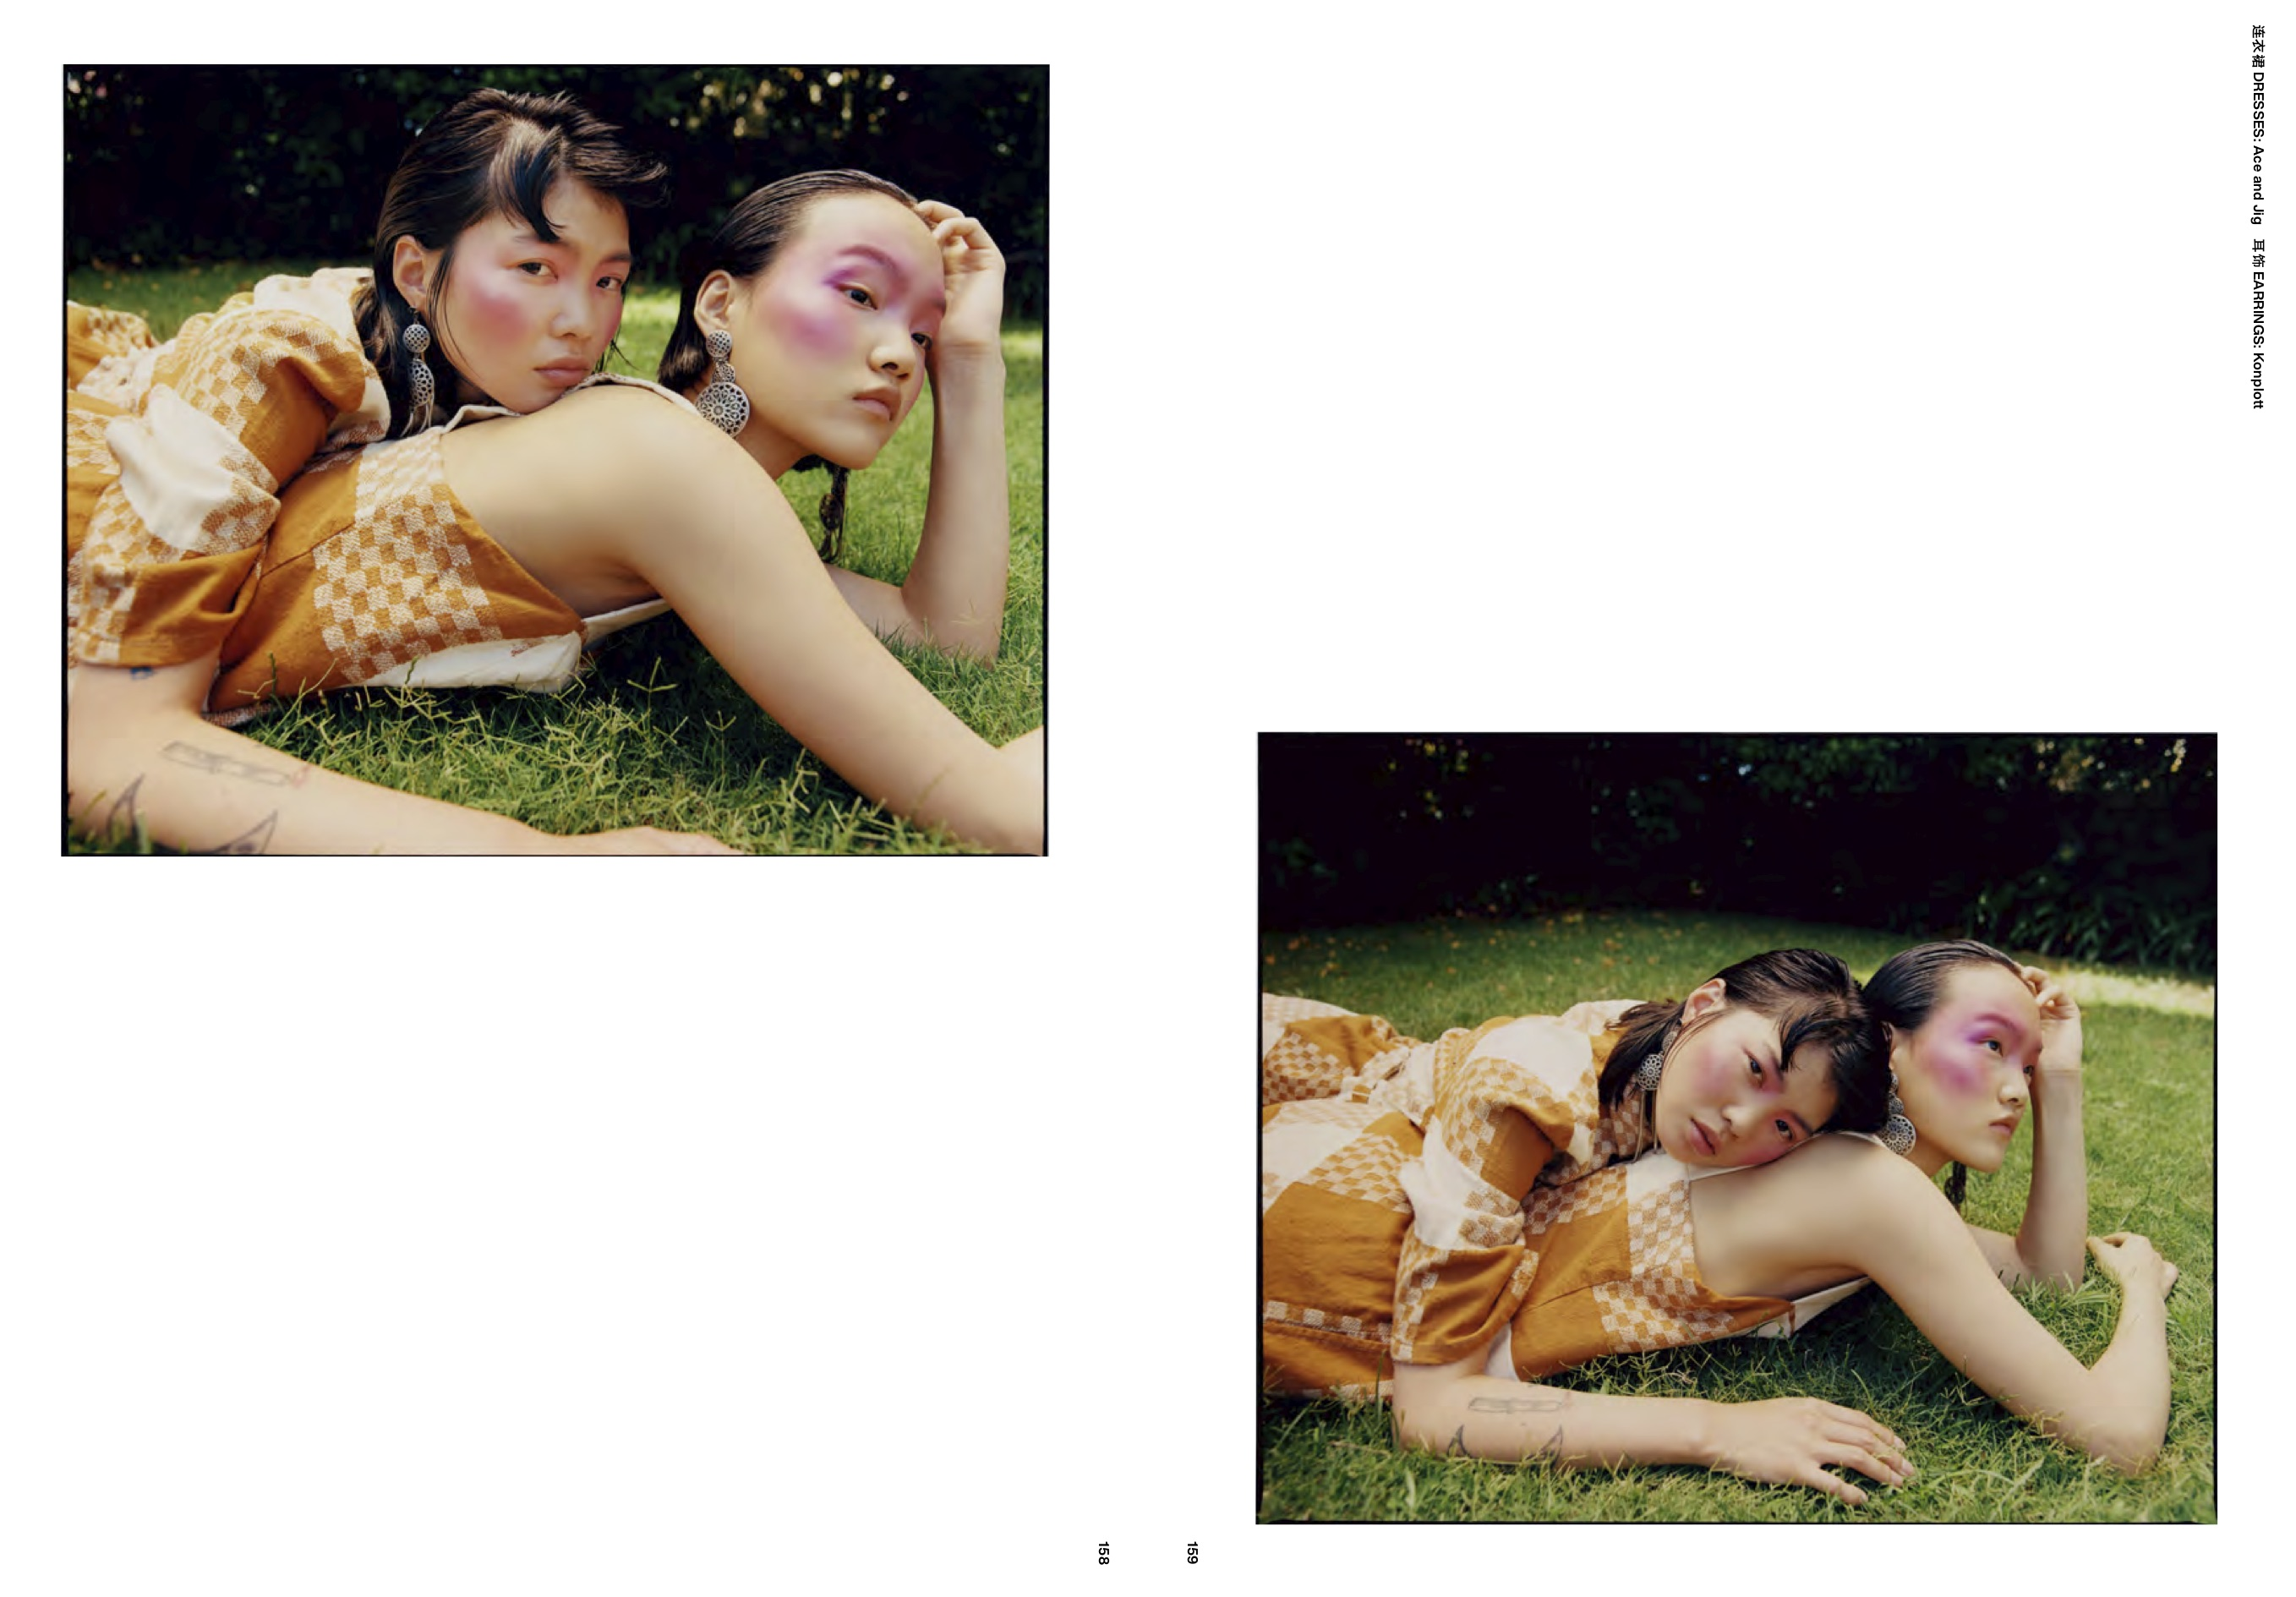 ROUGE - Fashion Book Photographer: Nadine Ijewere Model: Manami, Luna Wu, Pan Stylist: Nathan Klein Location: Tuscany